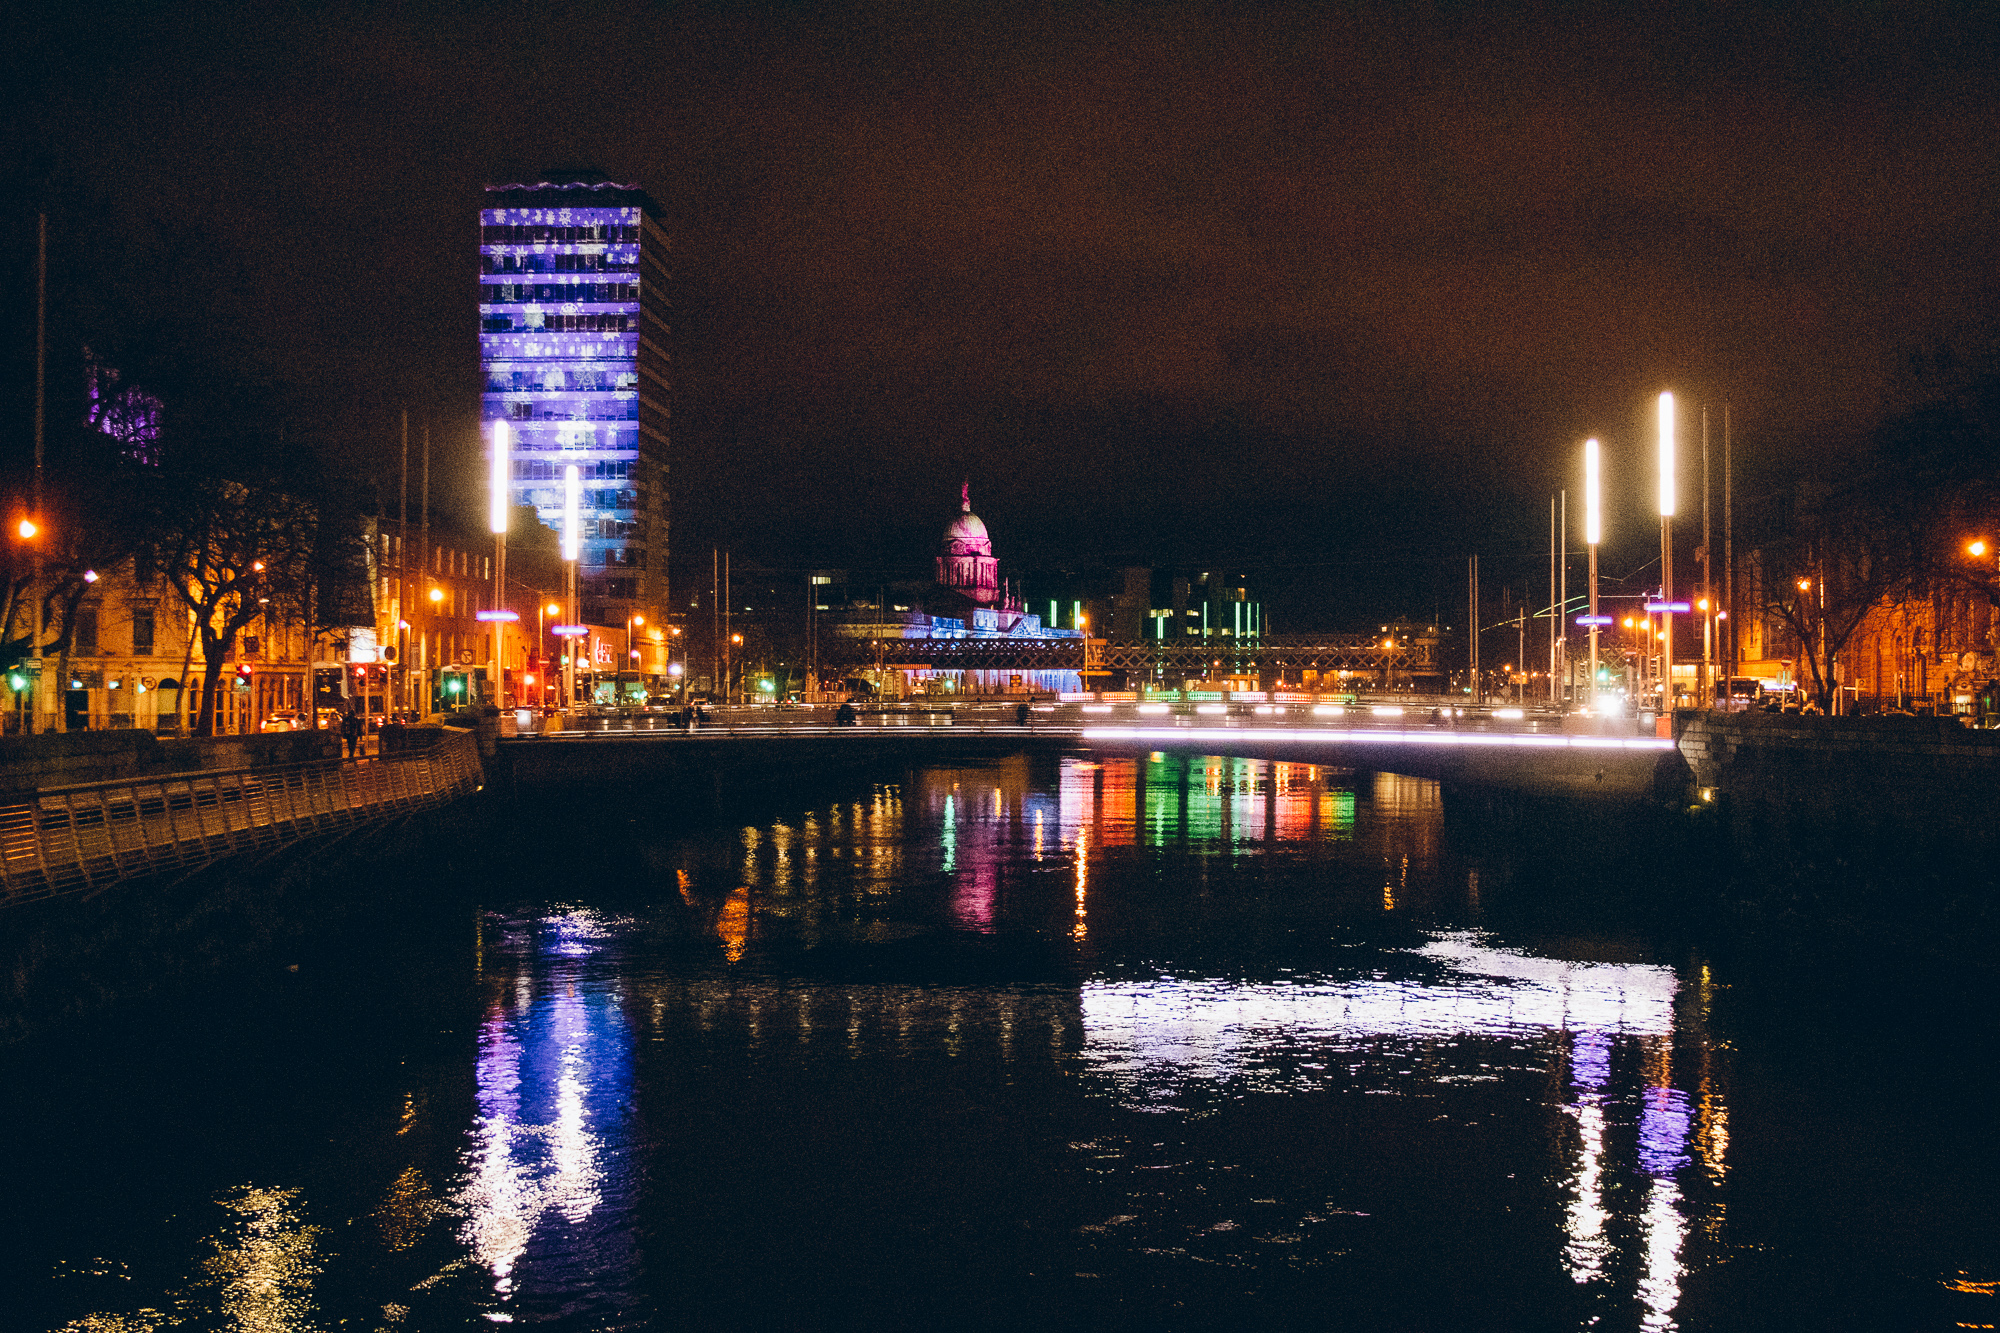 View of the Custom House by the River Liffey